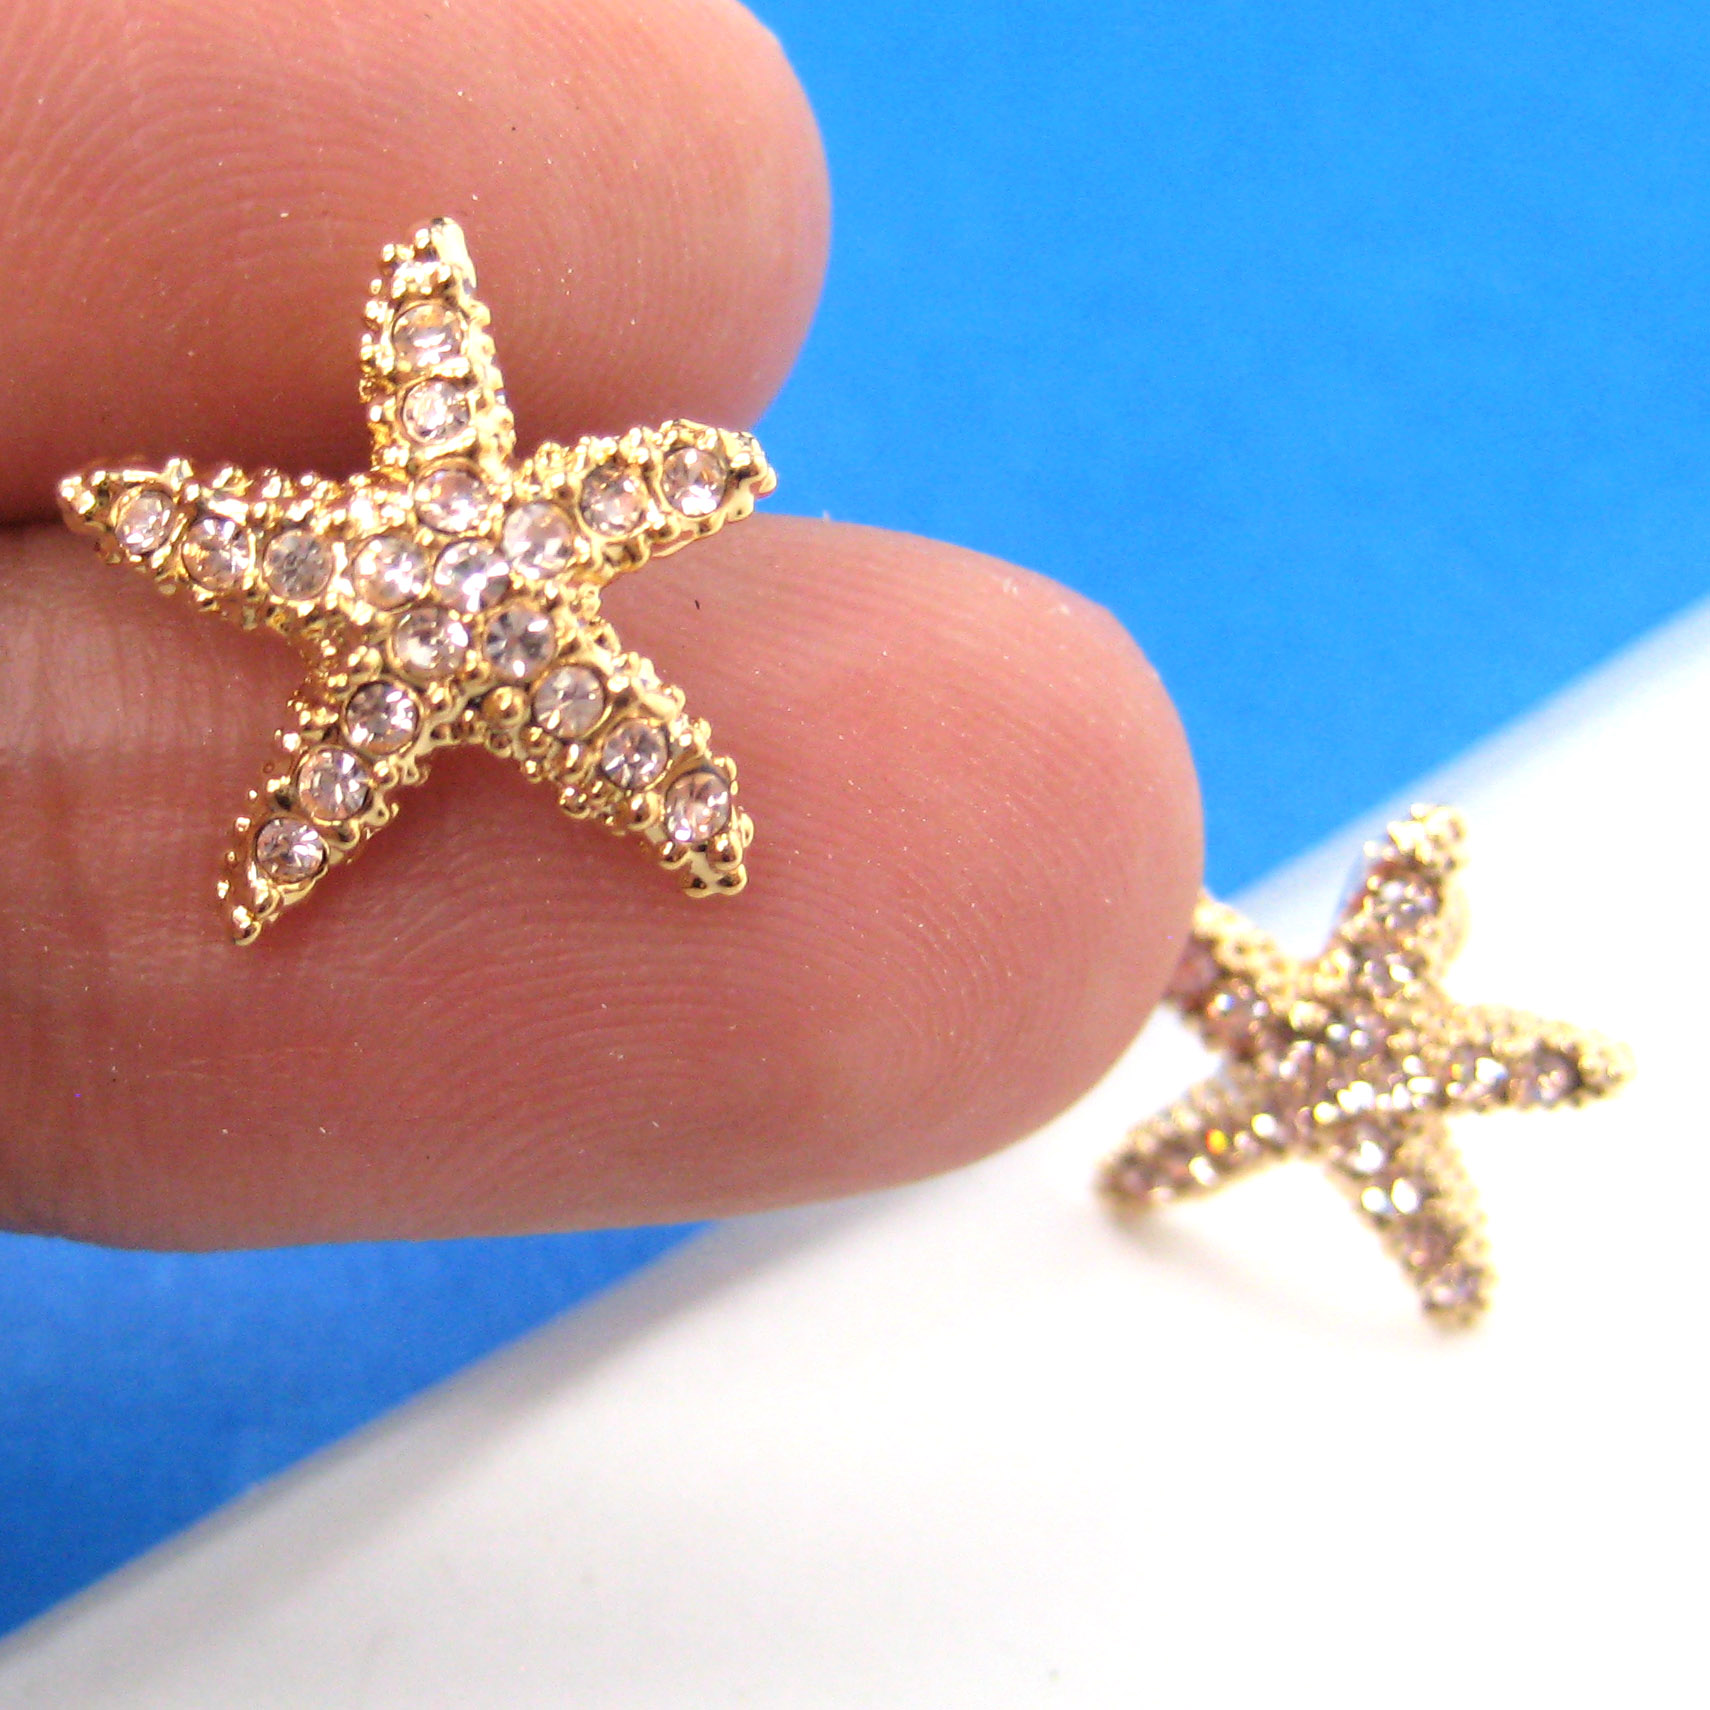 splash products studio bermuda stud petites collection earrings starfish jewellery alexandra small sand spsfsmster pink mosher